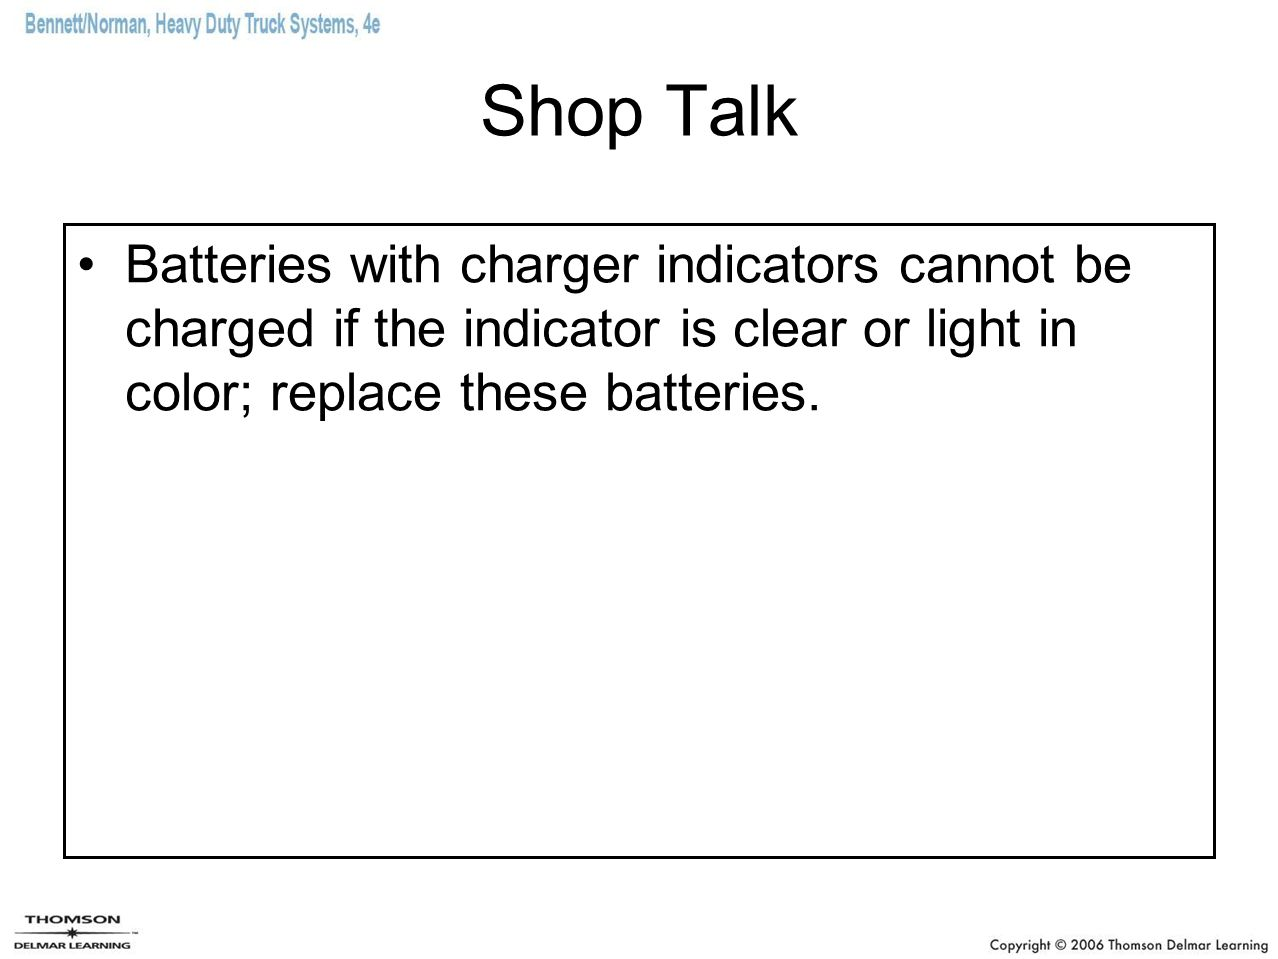 Shop Talk Batteries with charger indicators cannot be charged if the indicator is clear or light in color; replace these batteries.